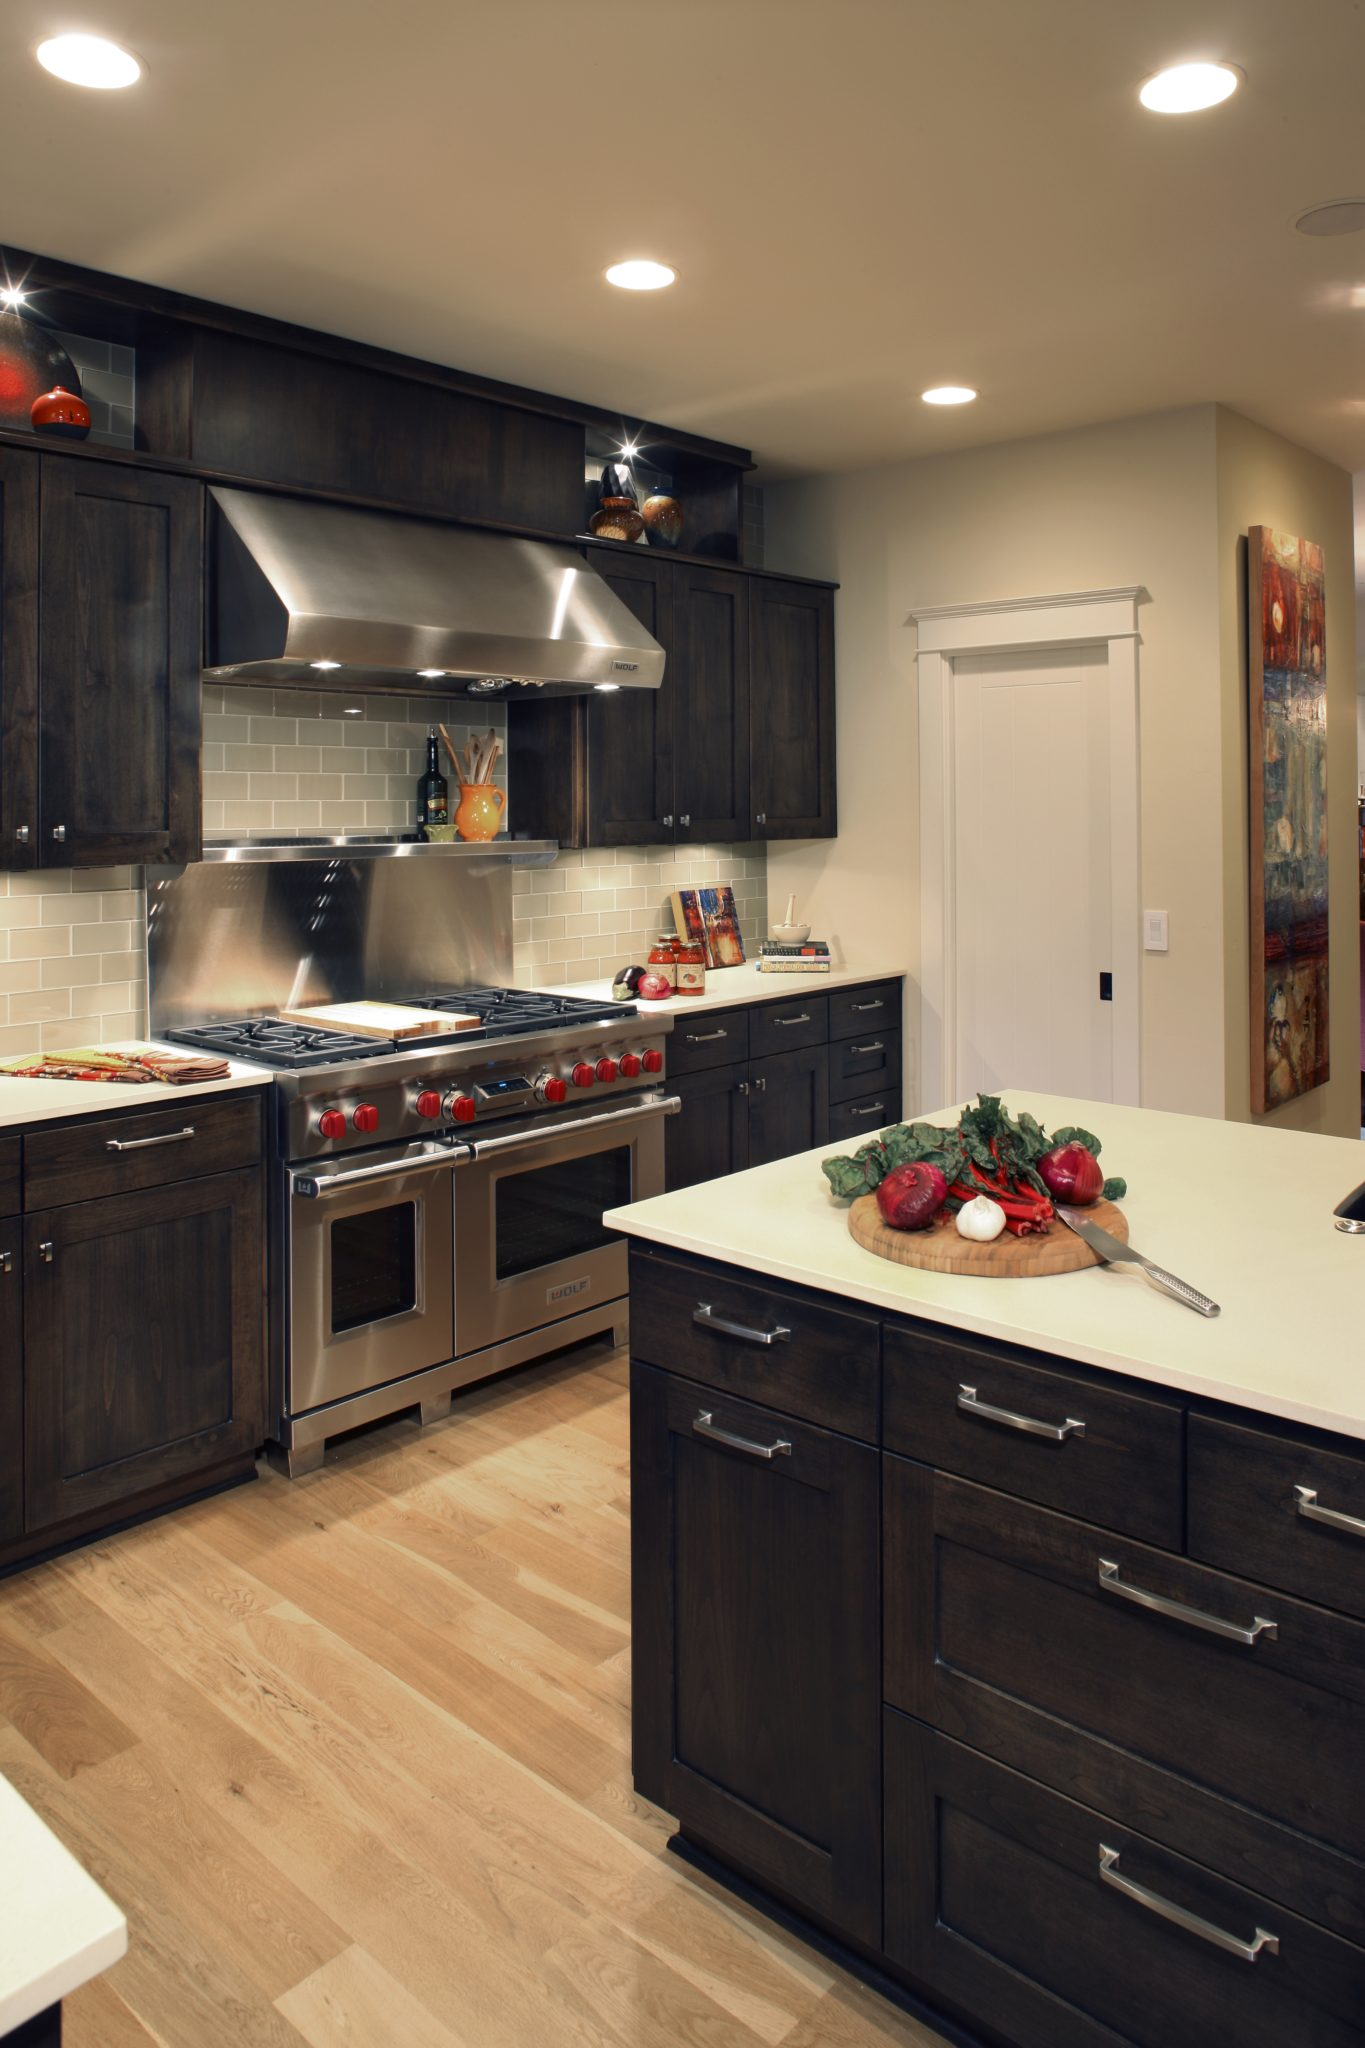 Neoclassical kitchen with subway tile backsplash and dark wood cabinets by PepperJack Interiors